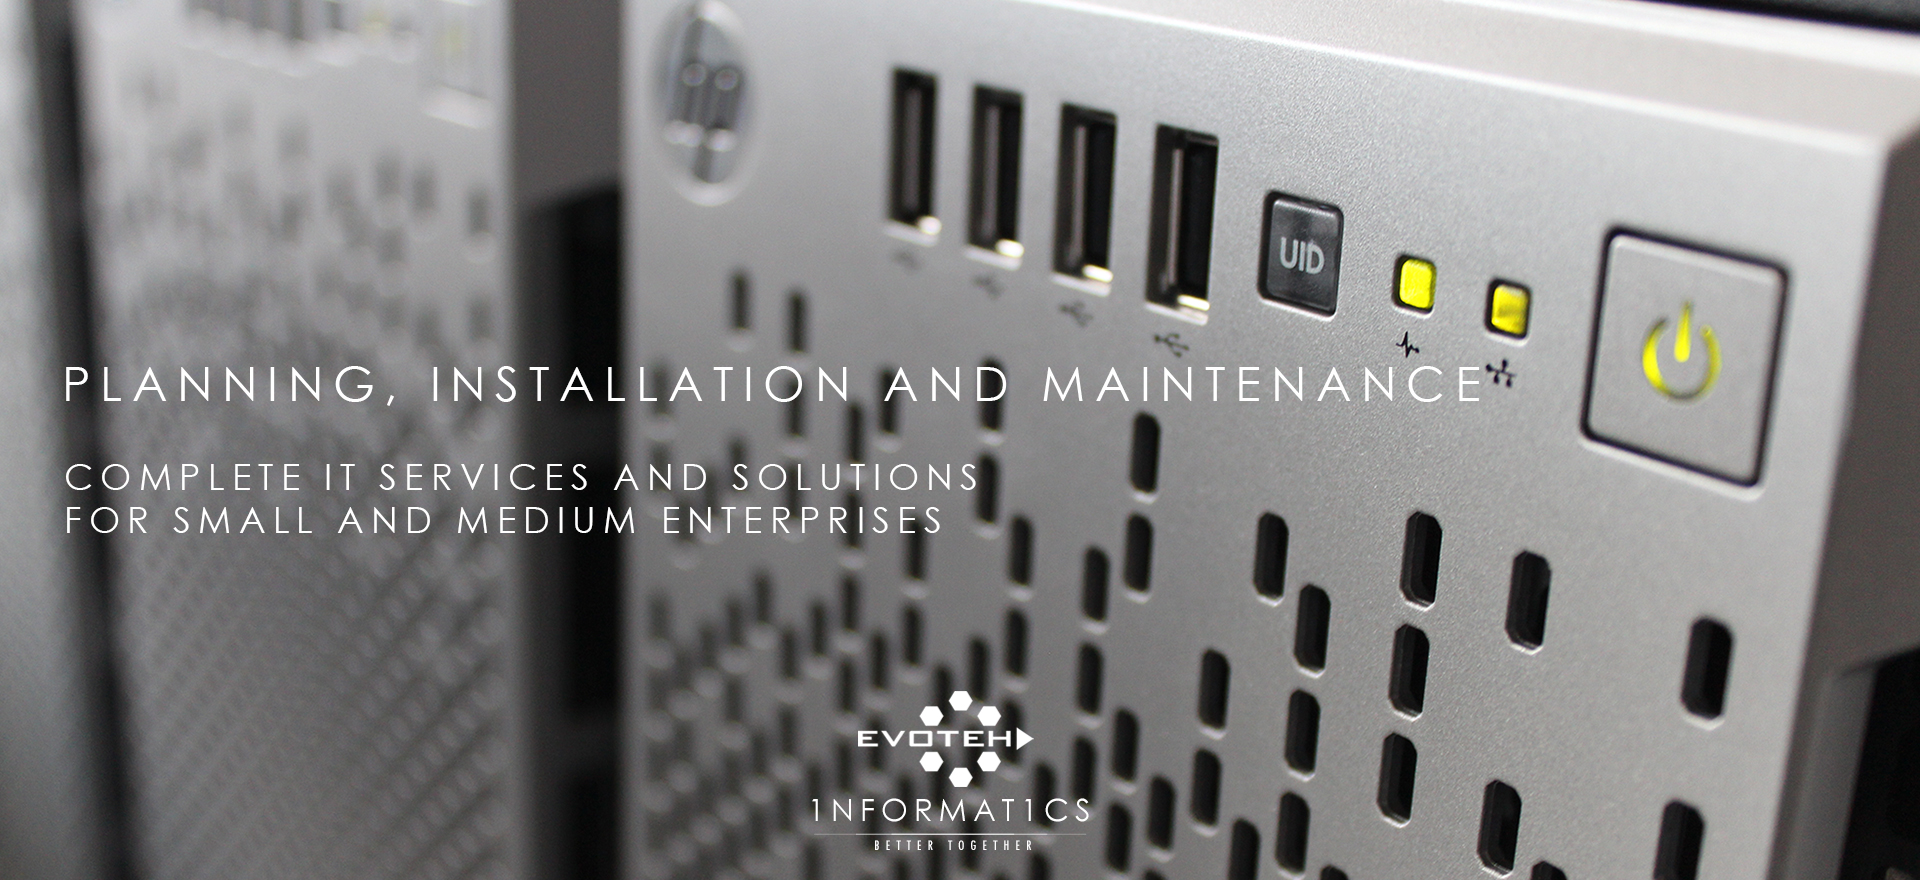 Planning, Installation and Maintainance. Complete IT Services and Solutions for Small and Midsize Business